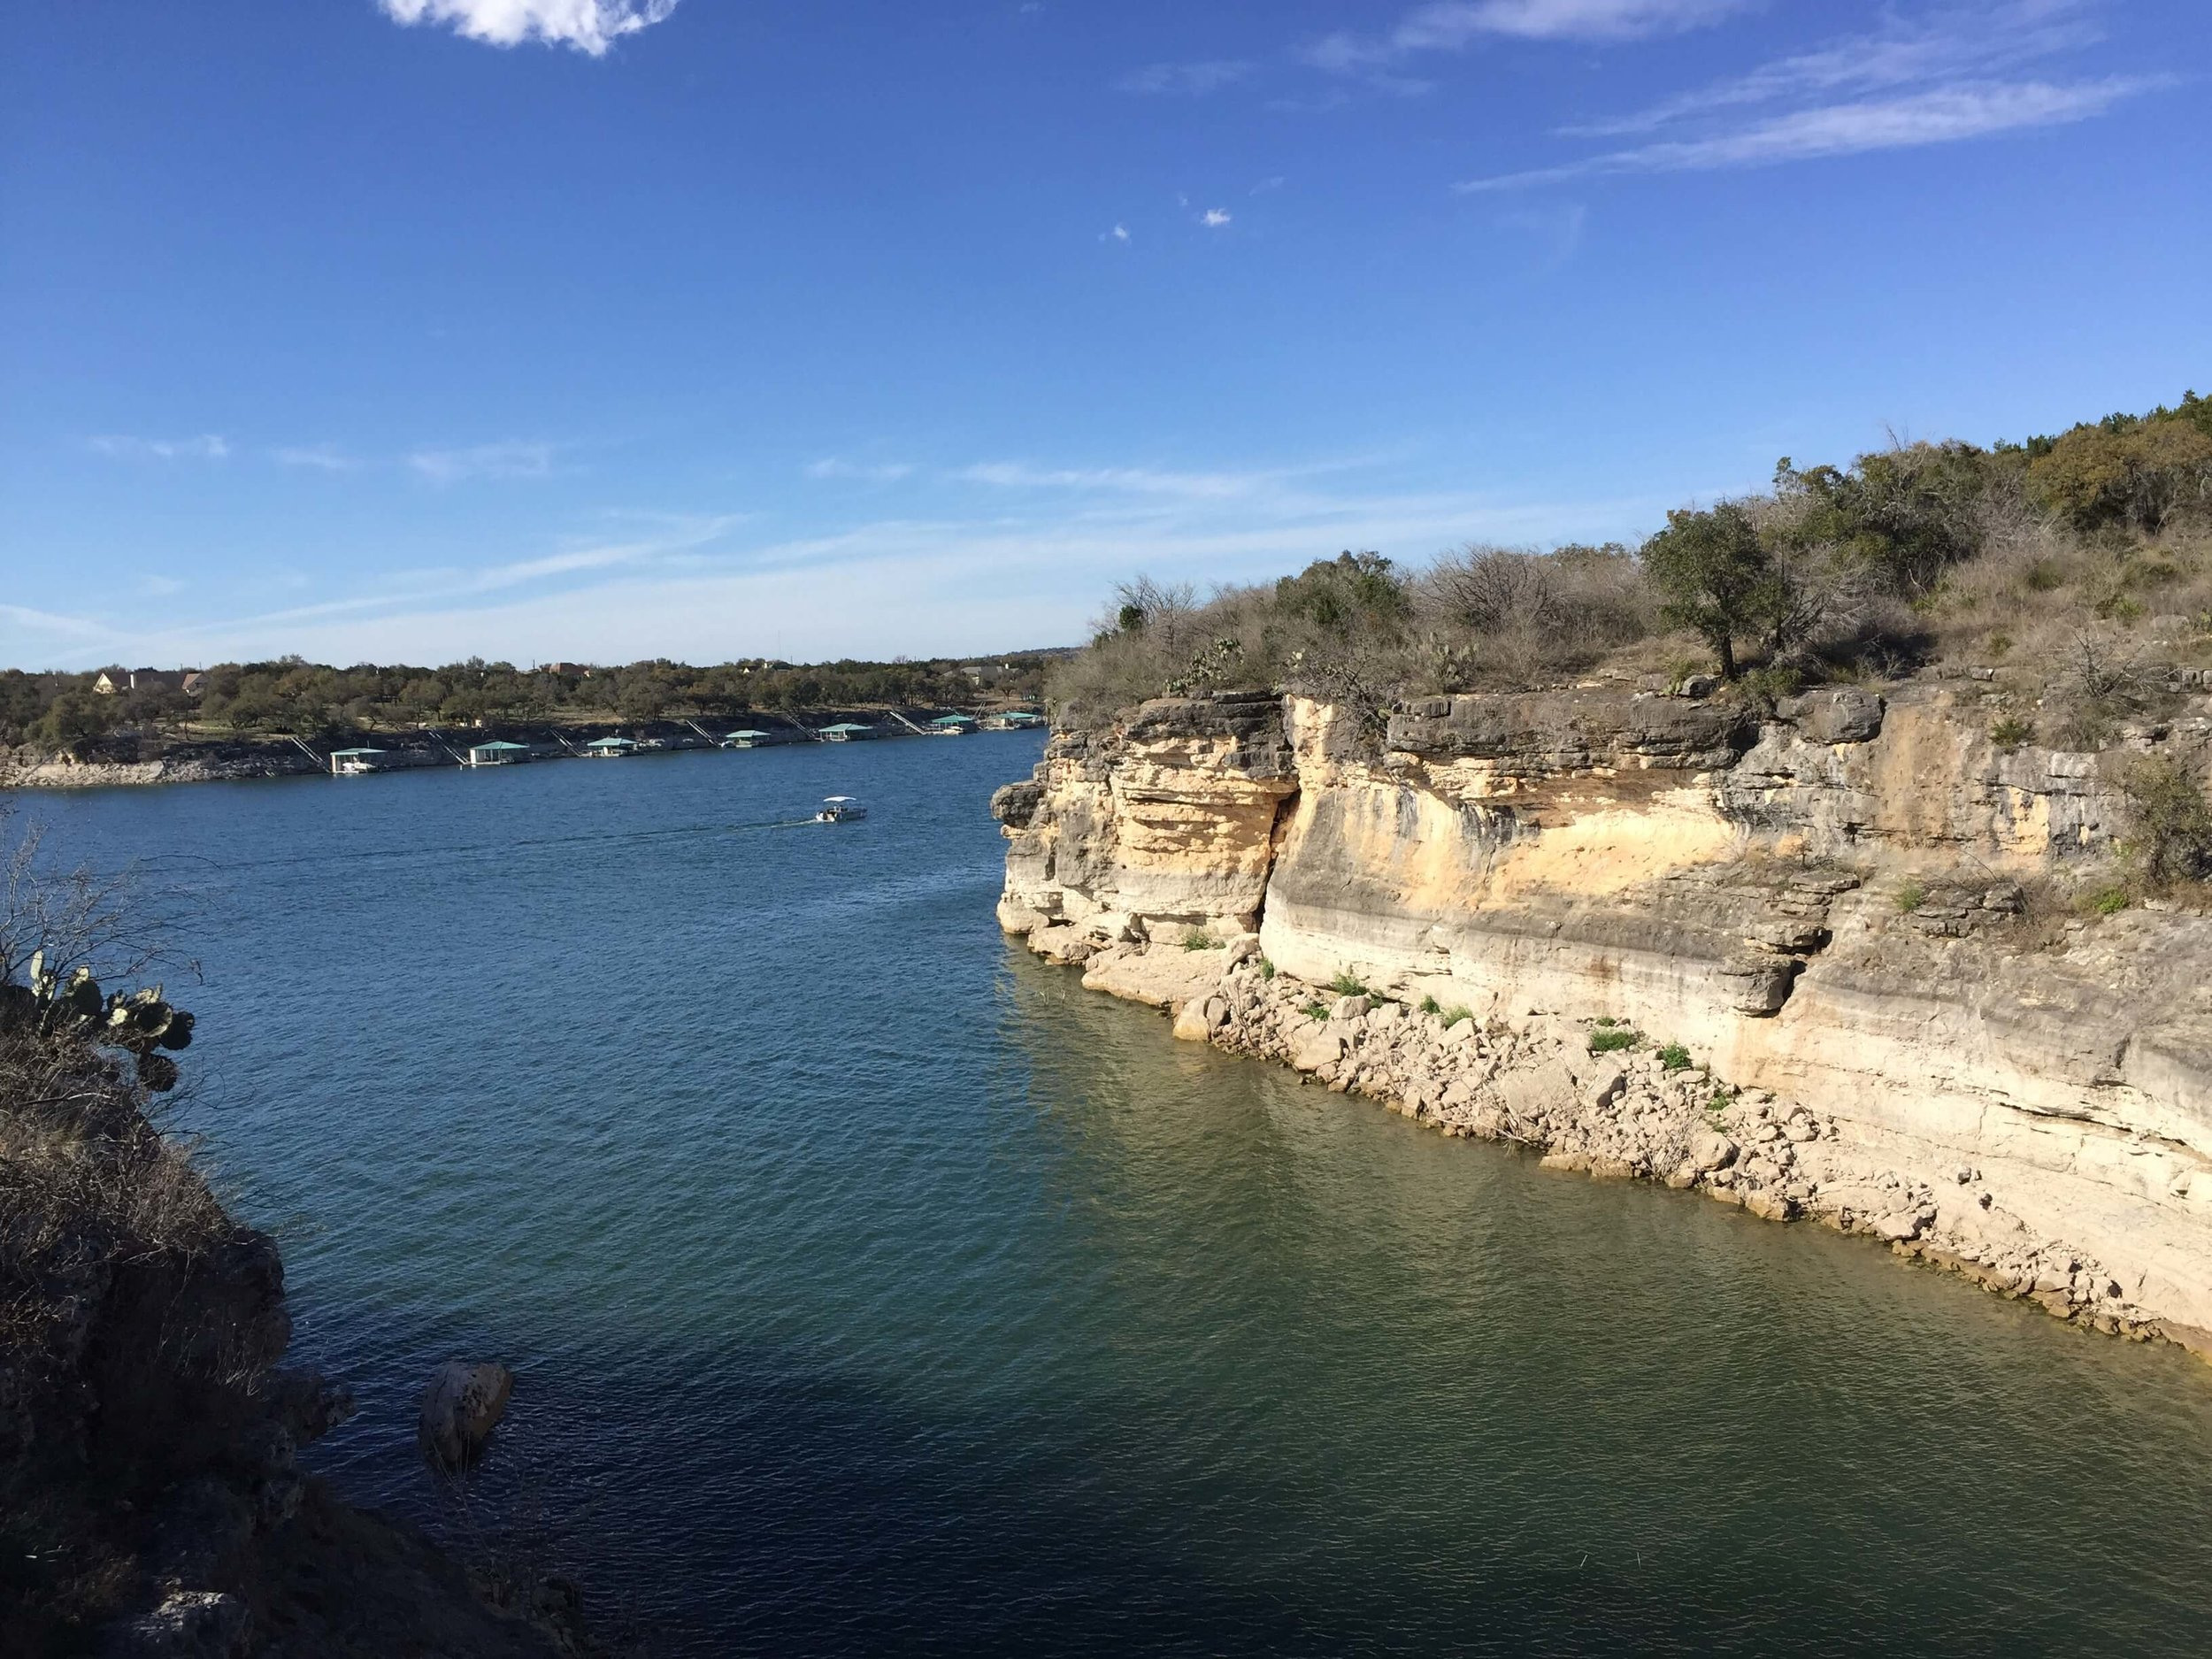 Lake Travis and Pace Bend, home to cliffs and fun rocks to climb!